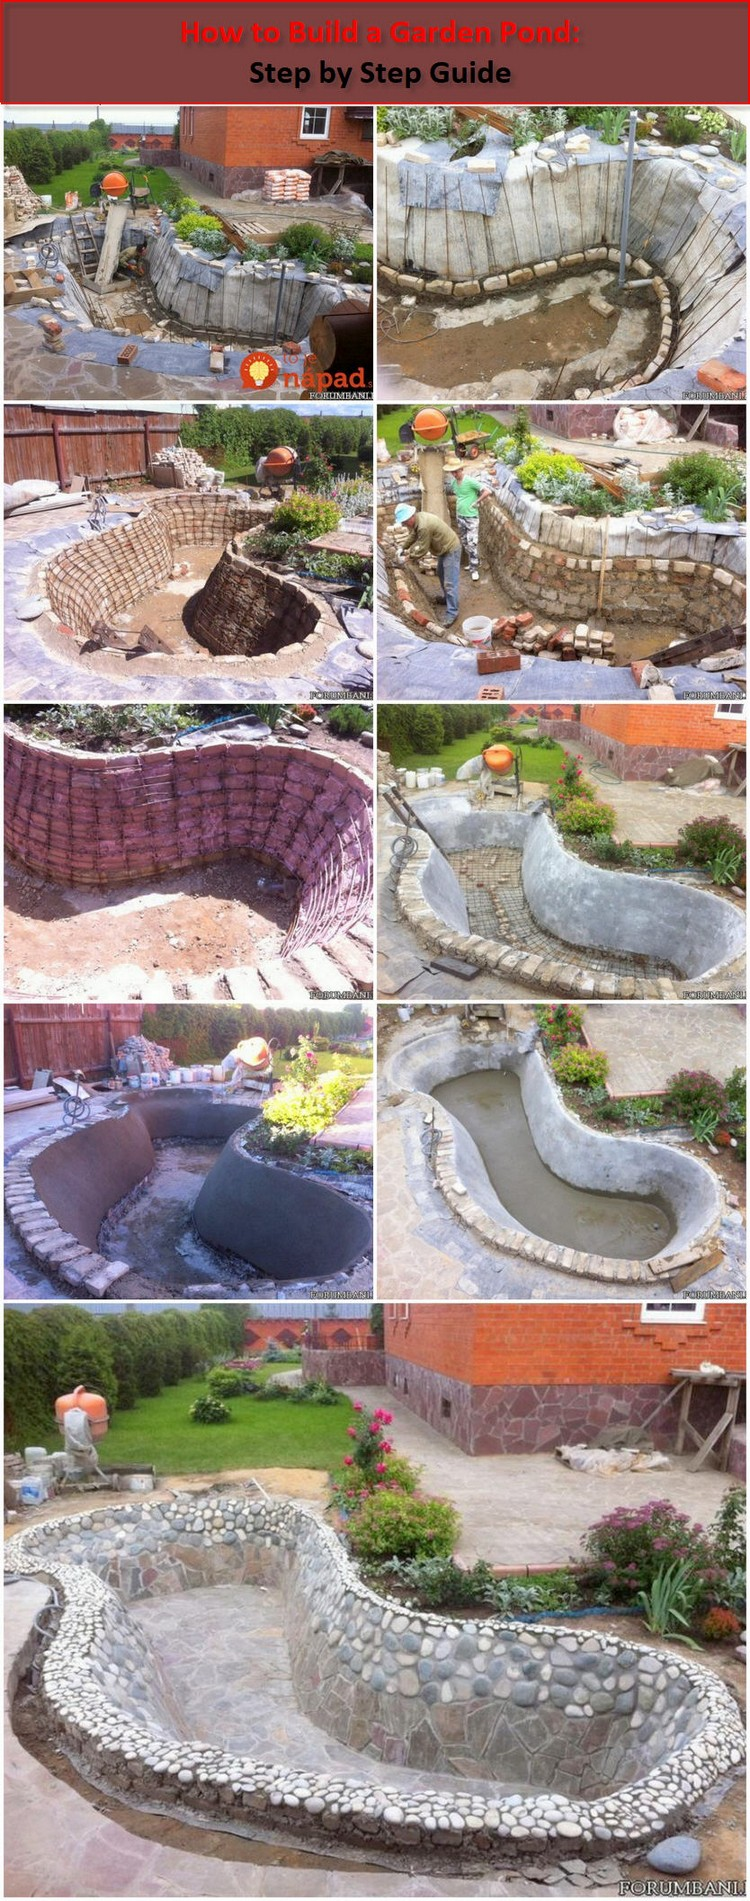 How to Build a Garden Pond Step by Step Guide